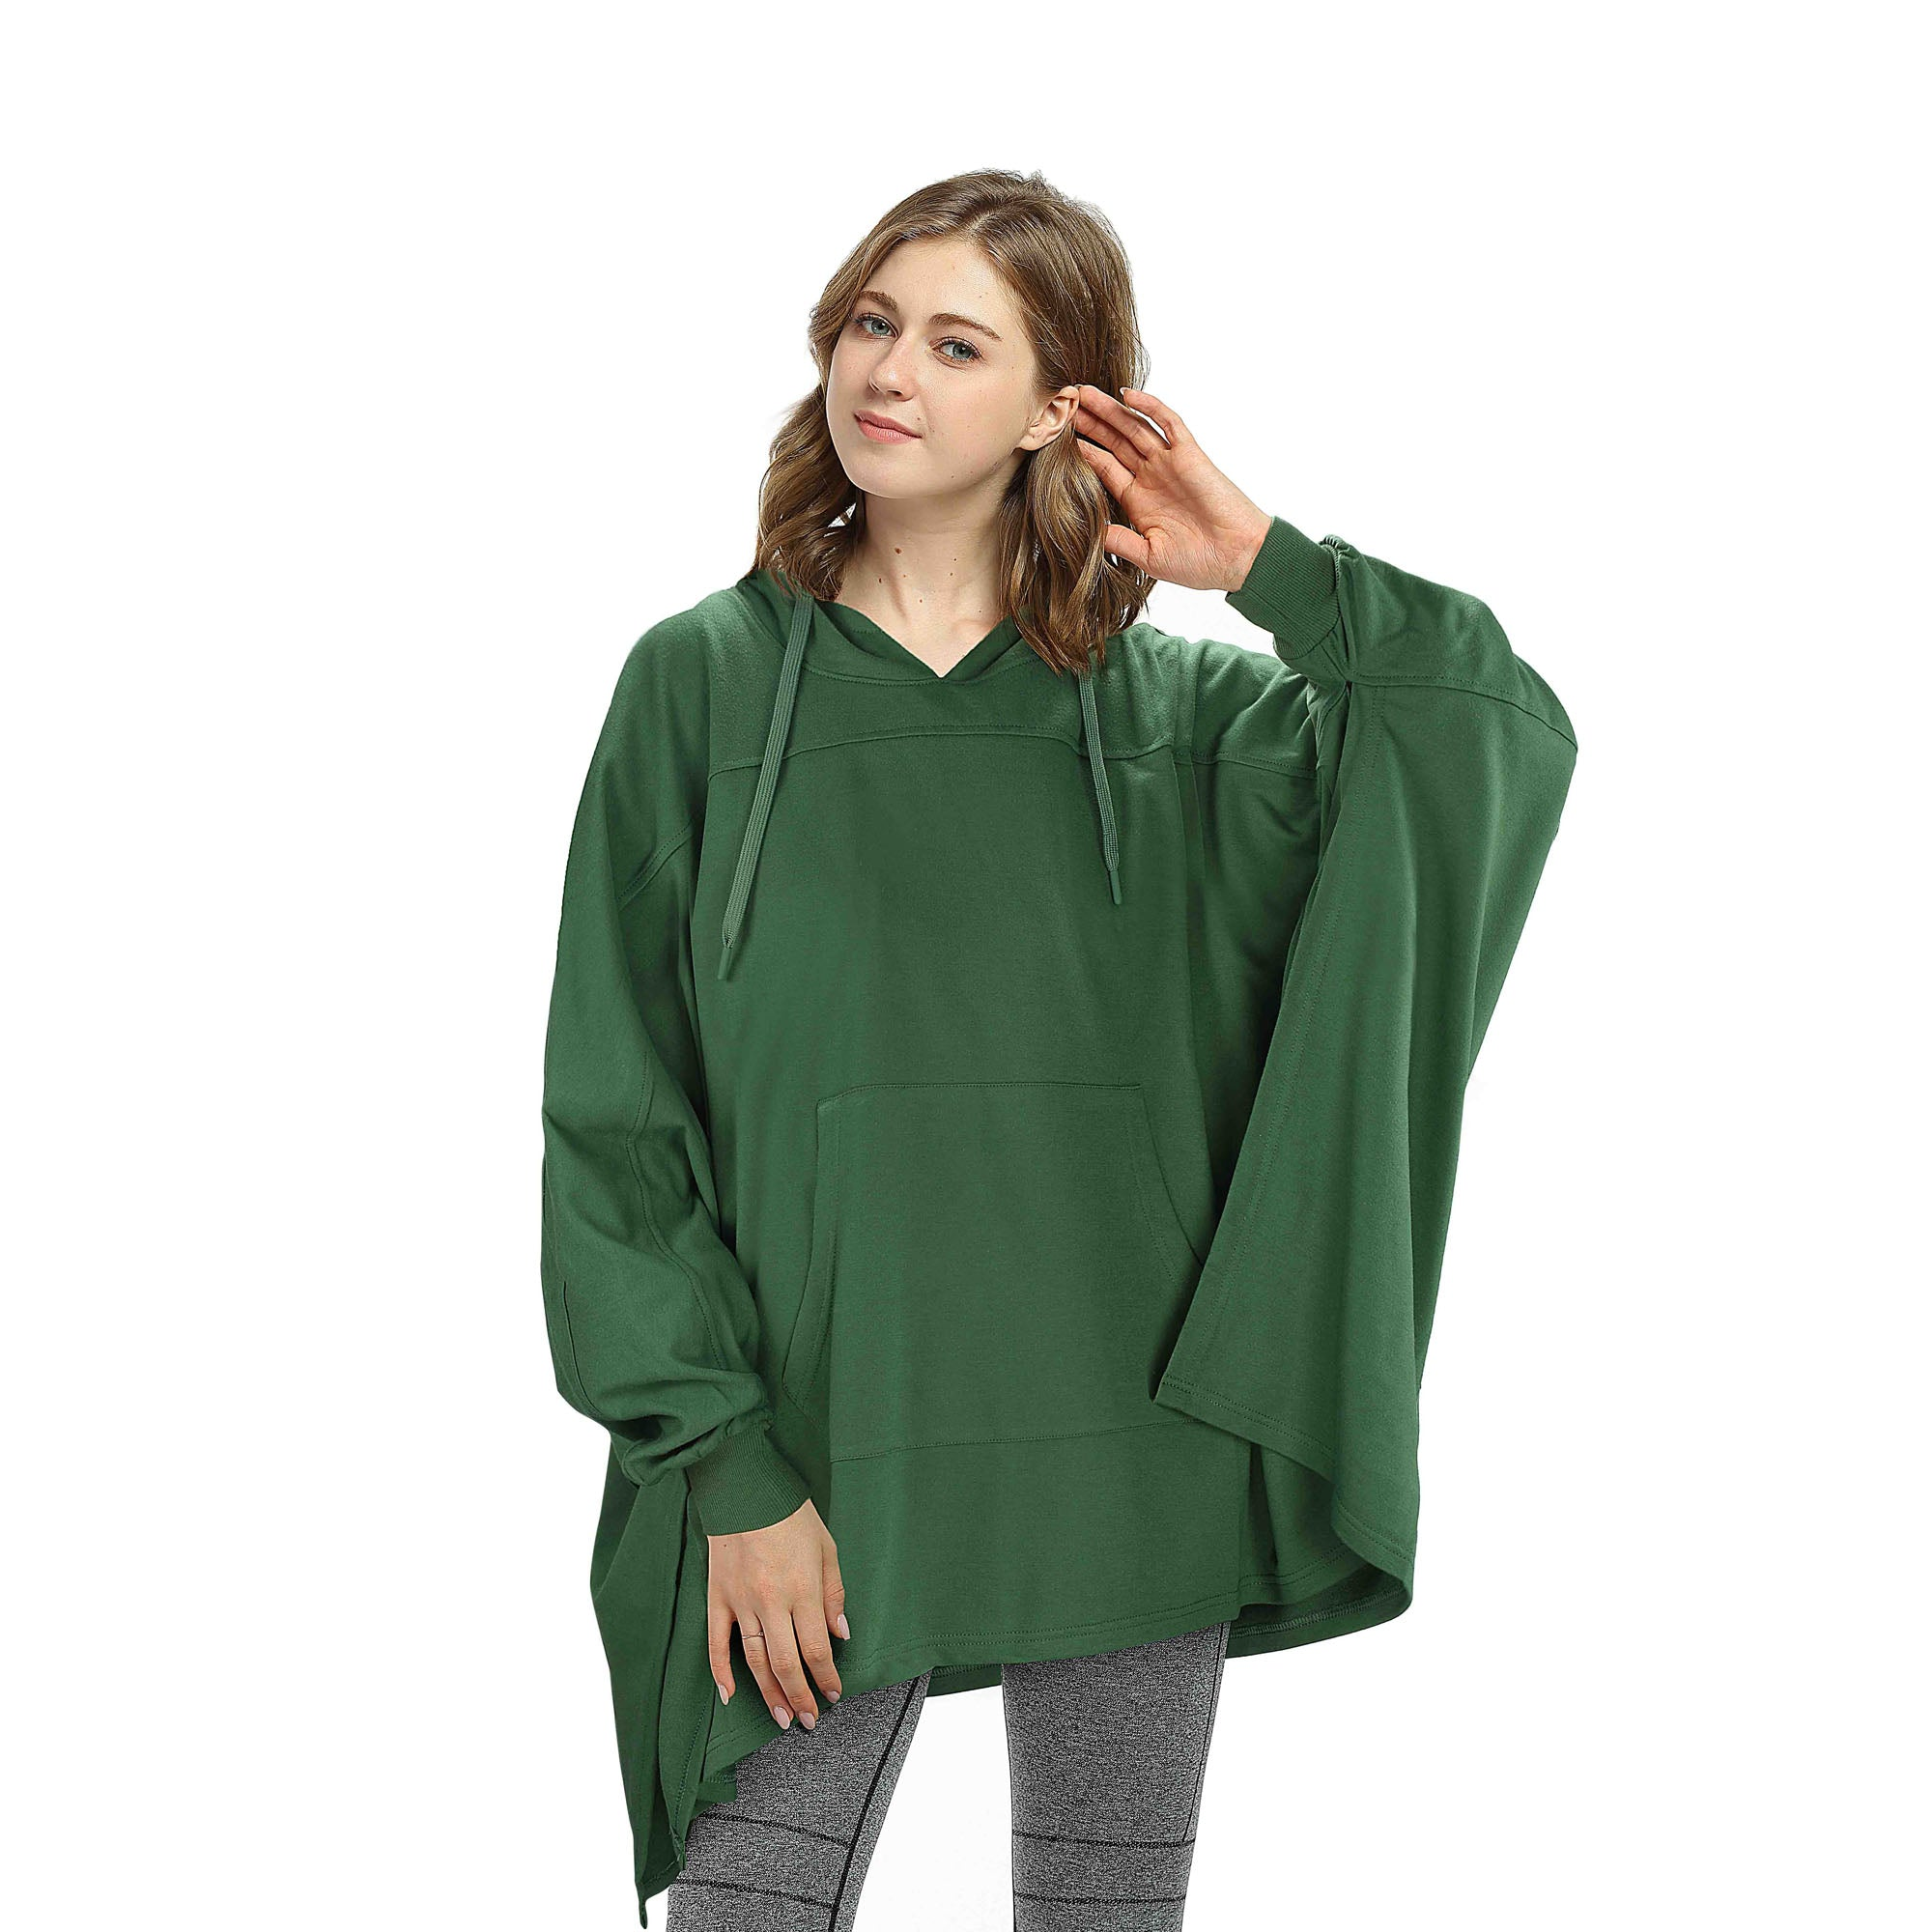 Oversized Hoodie Sweatshirt Poncho for Women